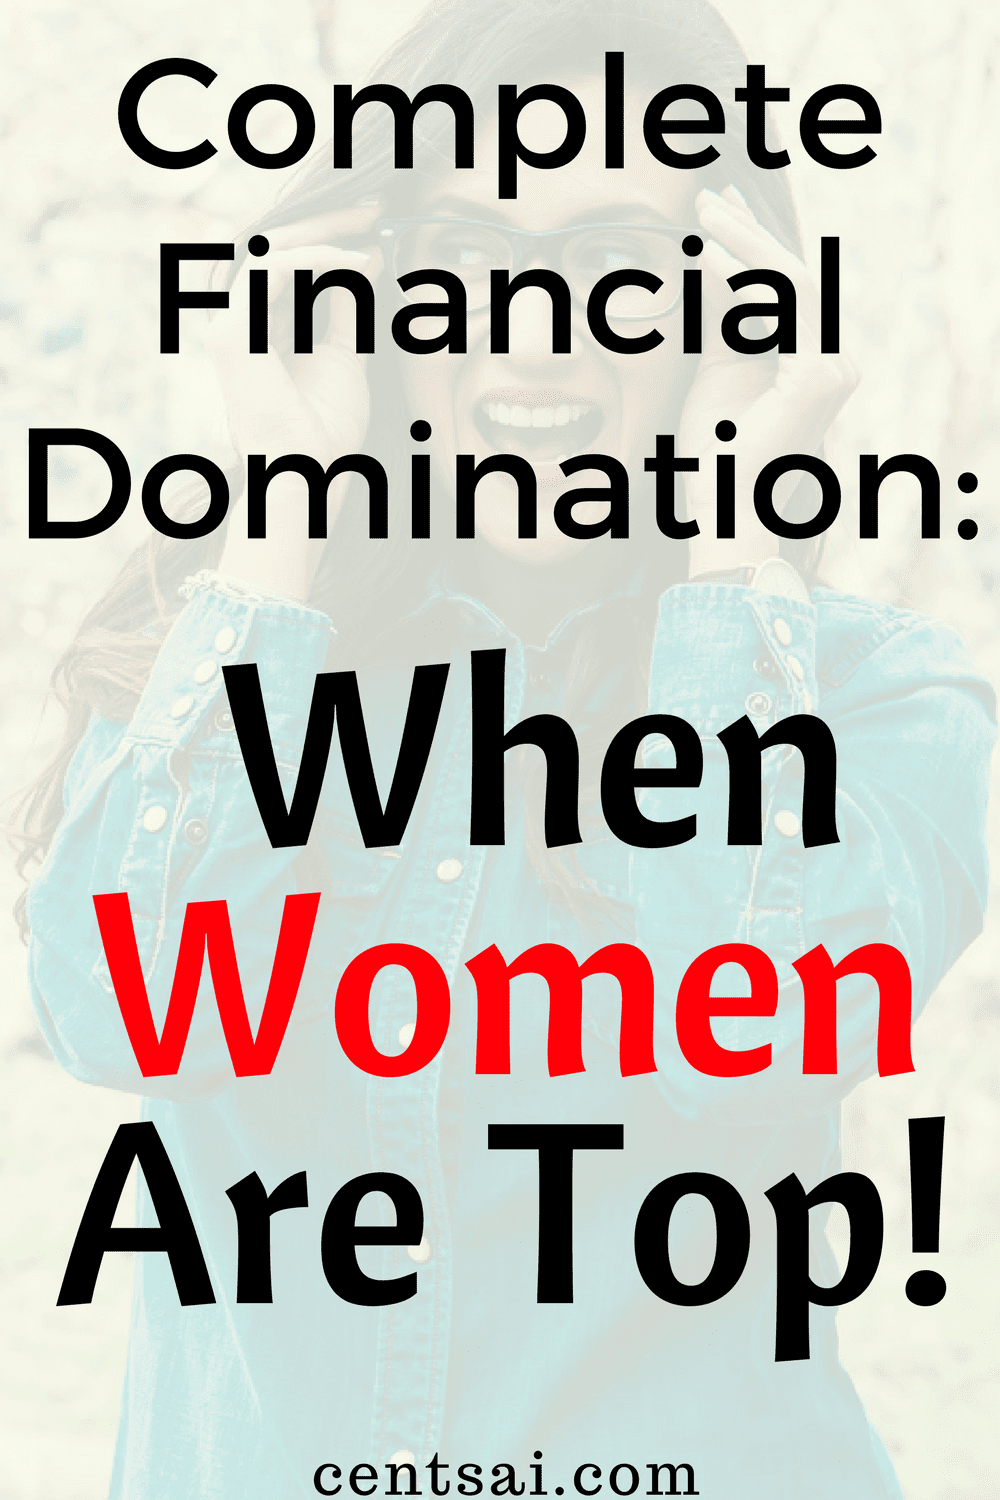 Complete Financial Domination: When Women Are Top!